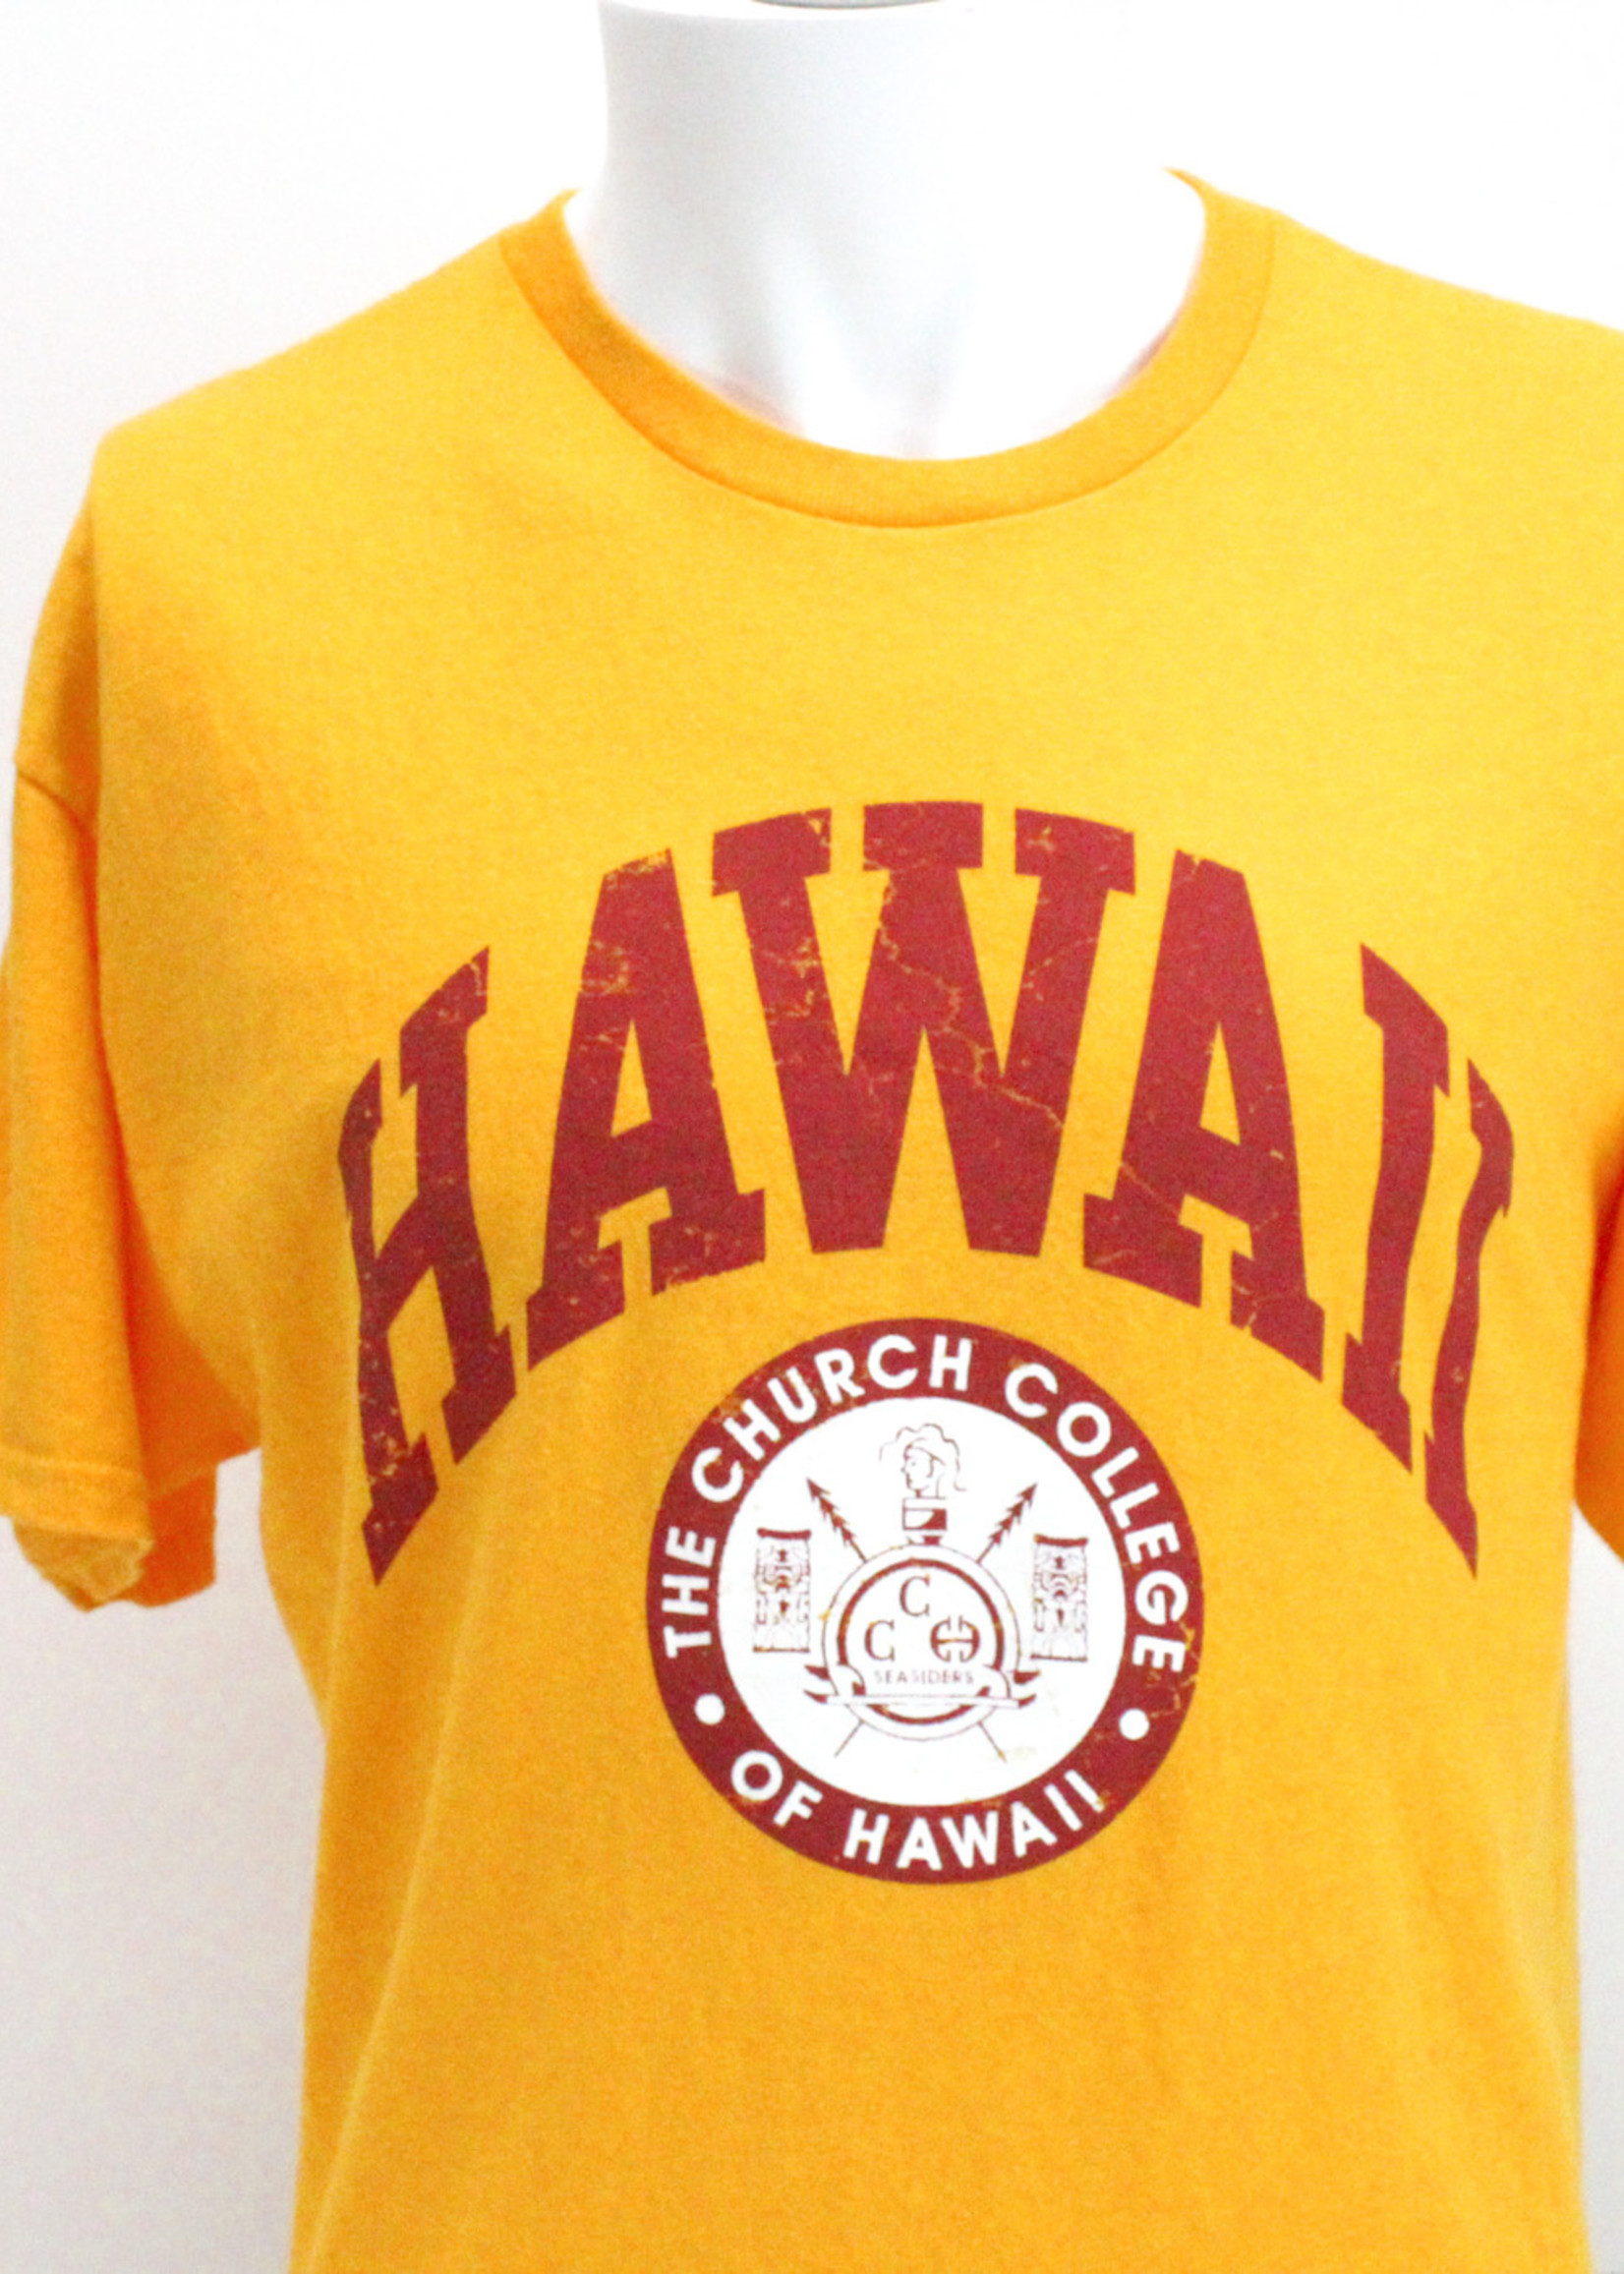 CCH Church College of Hawaii Seal